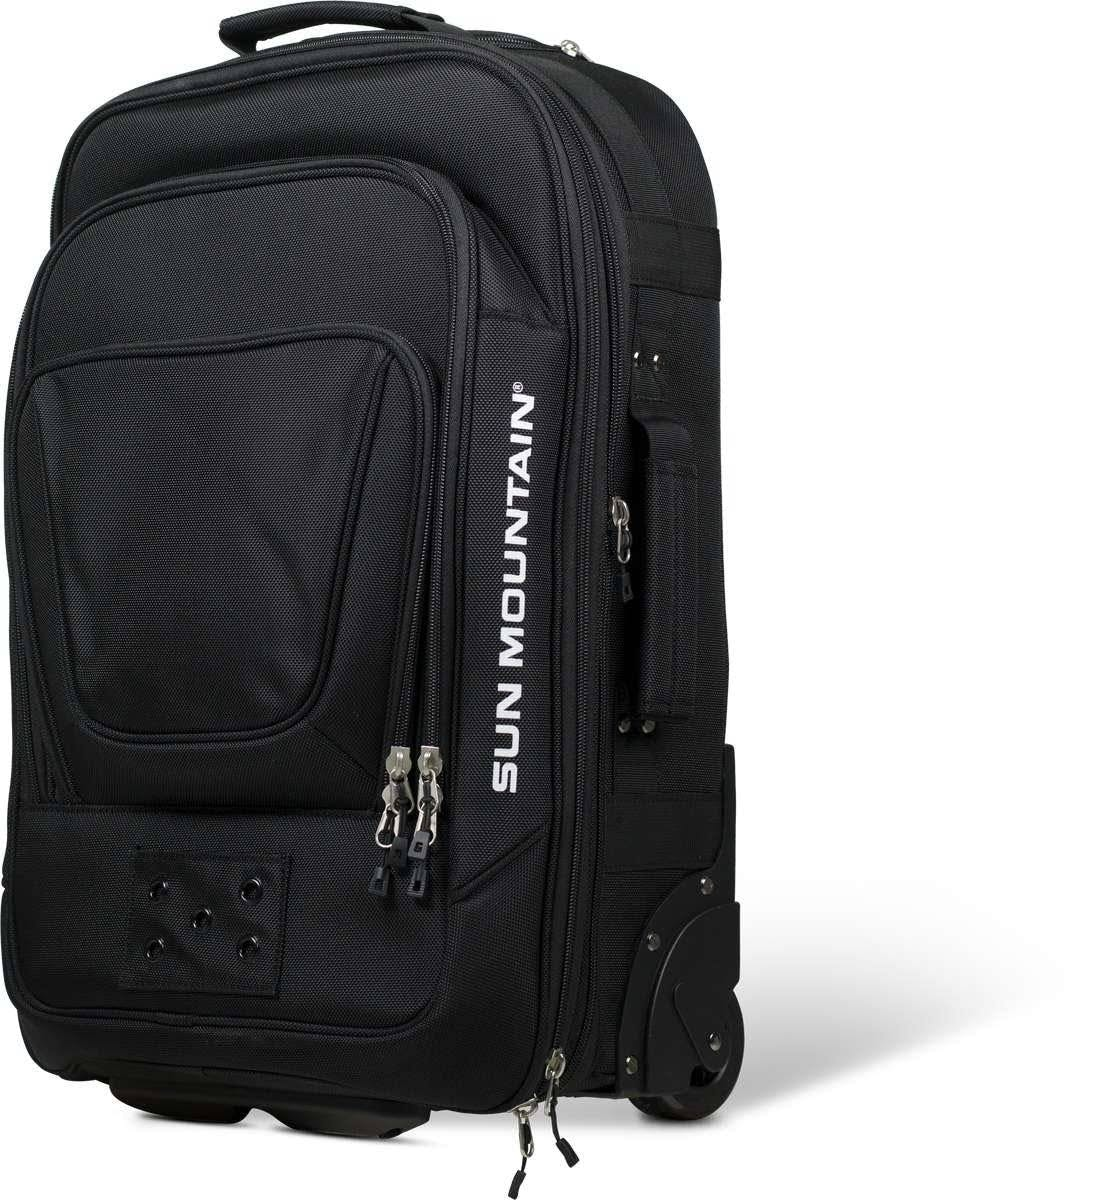 Sun Mountain Wheeled Carry on Luggage Black